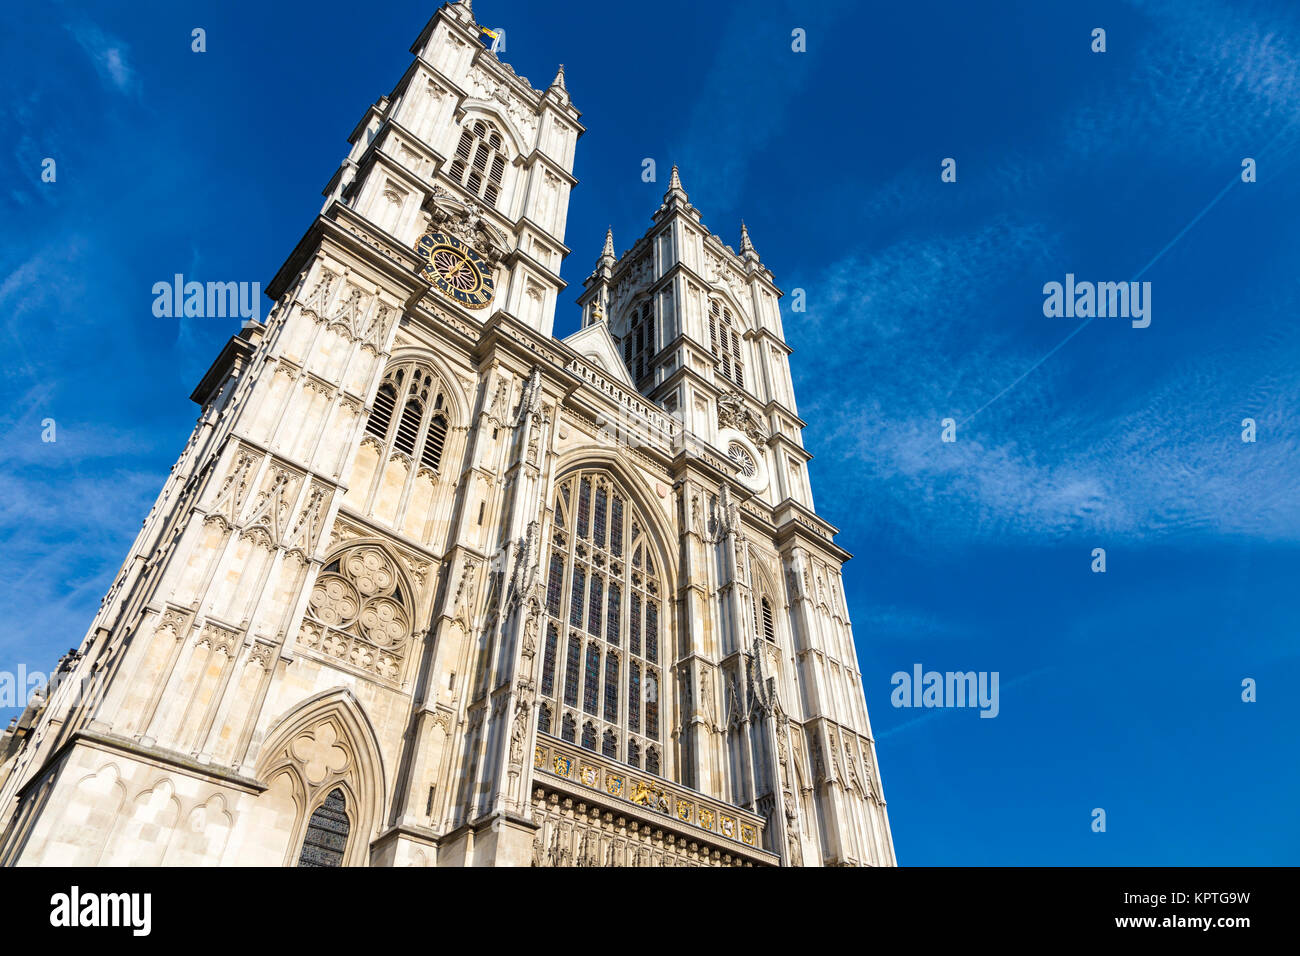 The front facade of Westminster Abbey, London, UK - Stock Image